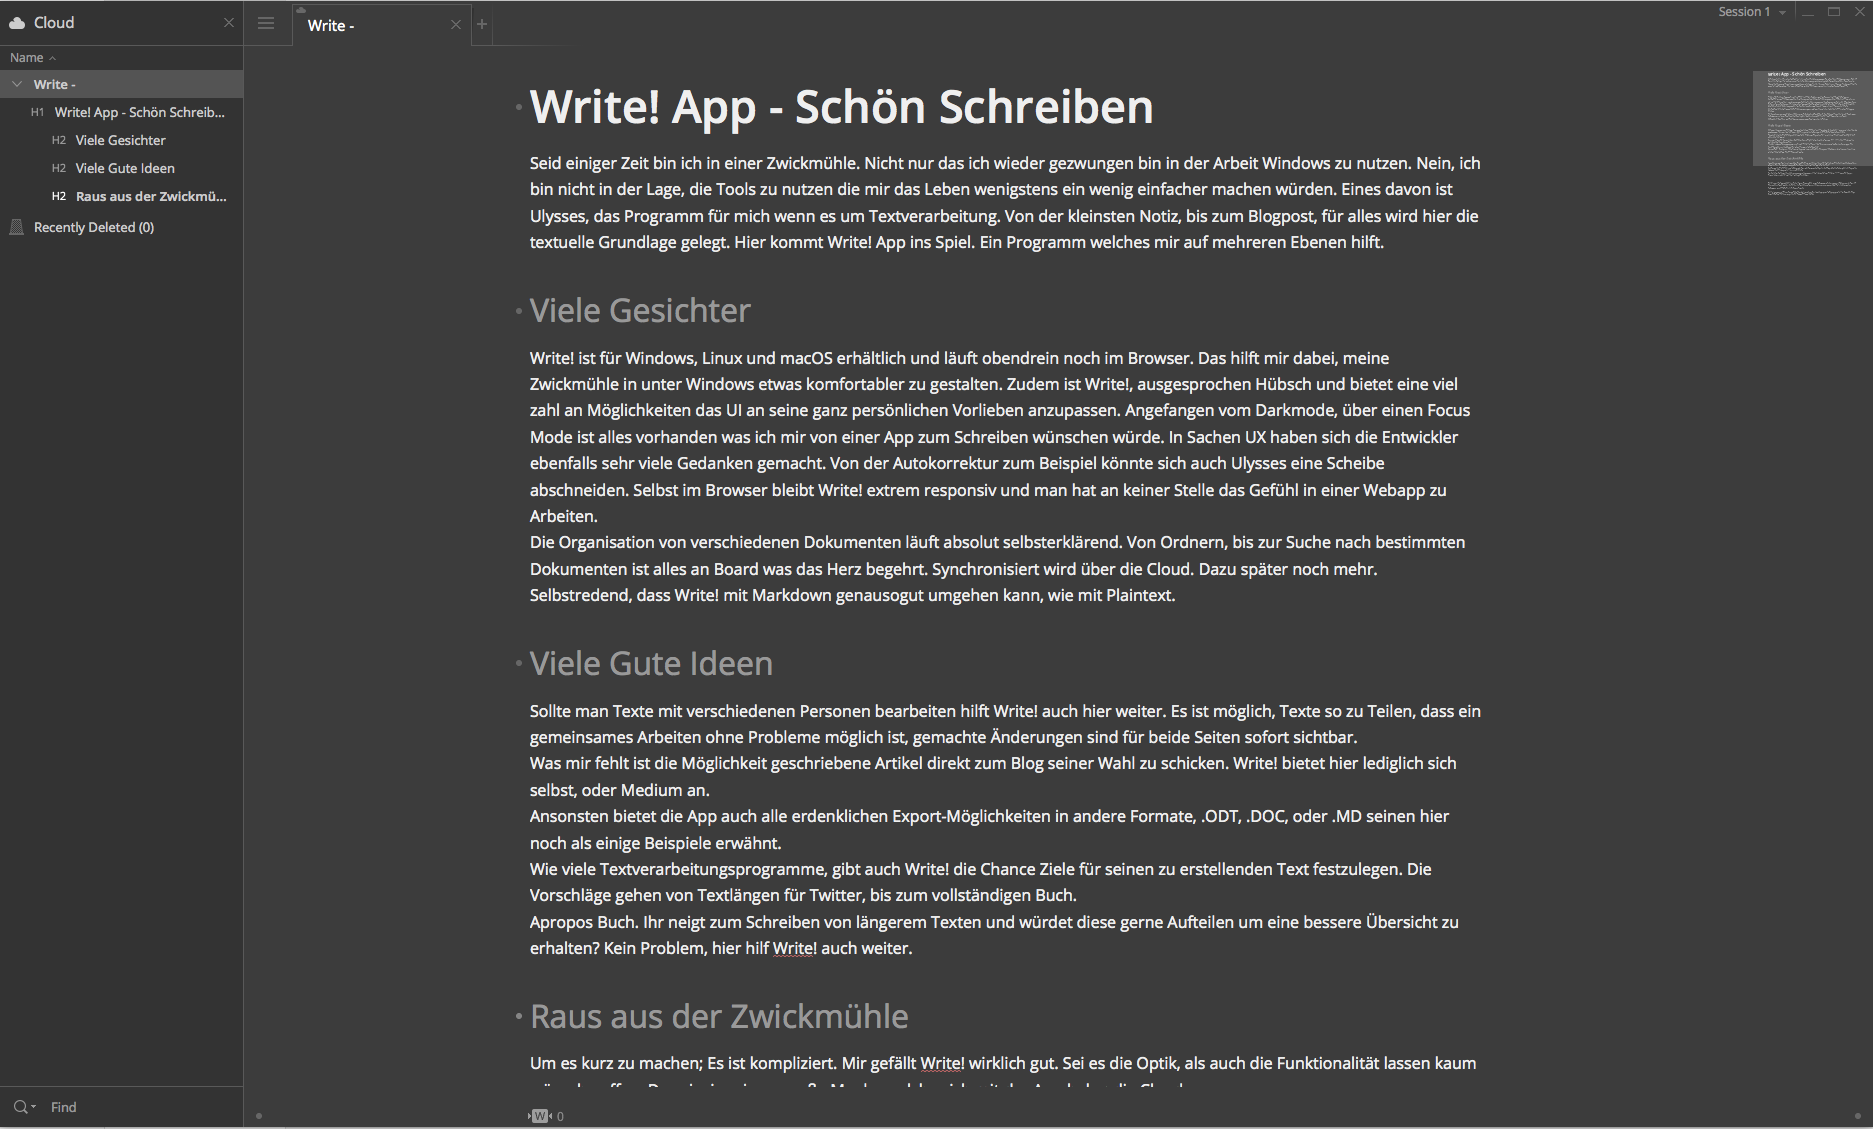 Write! App in der Vollansicht